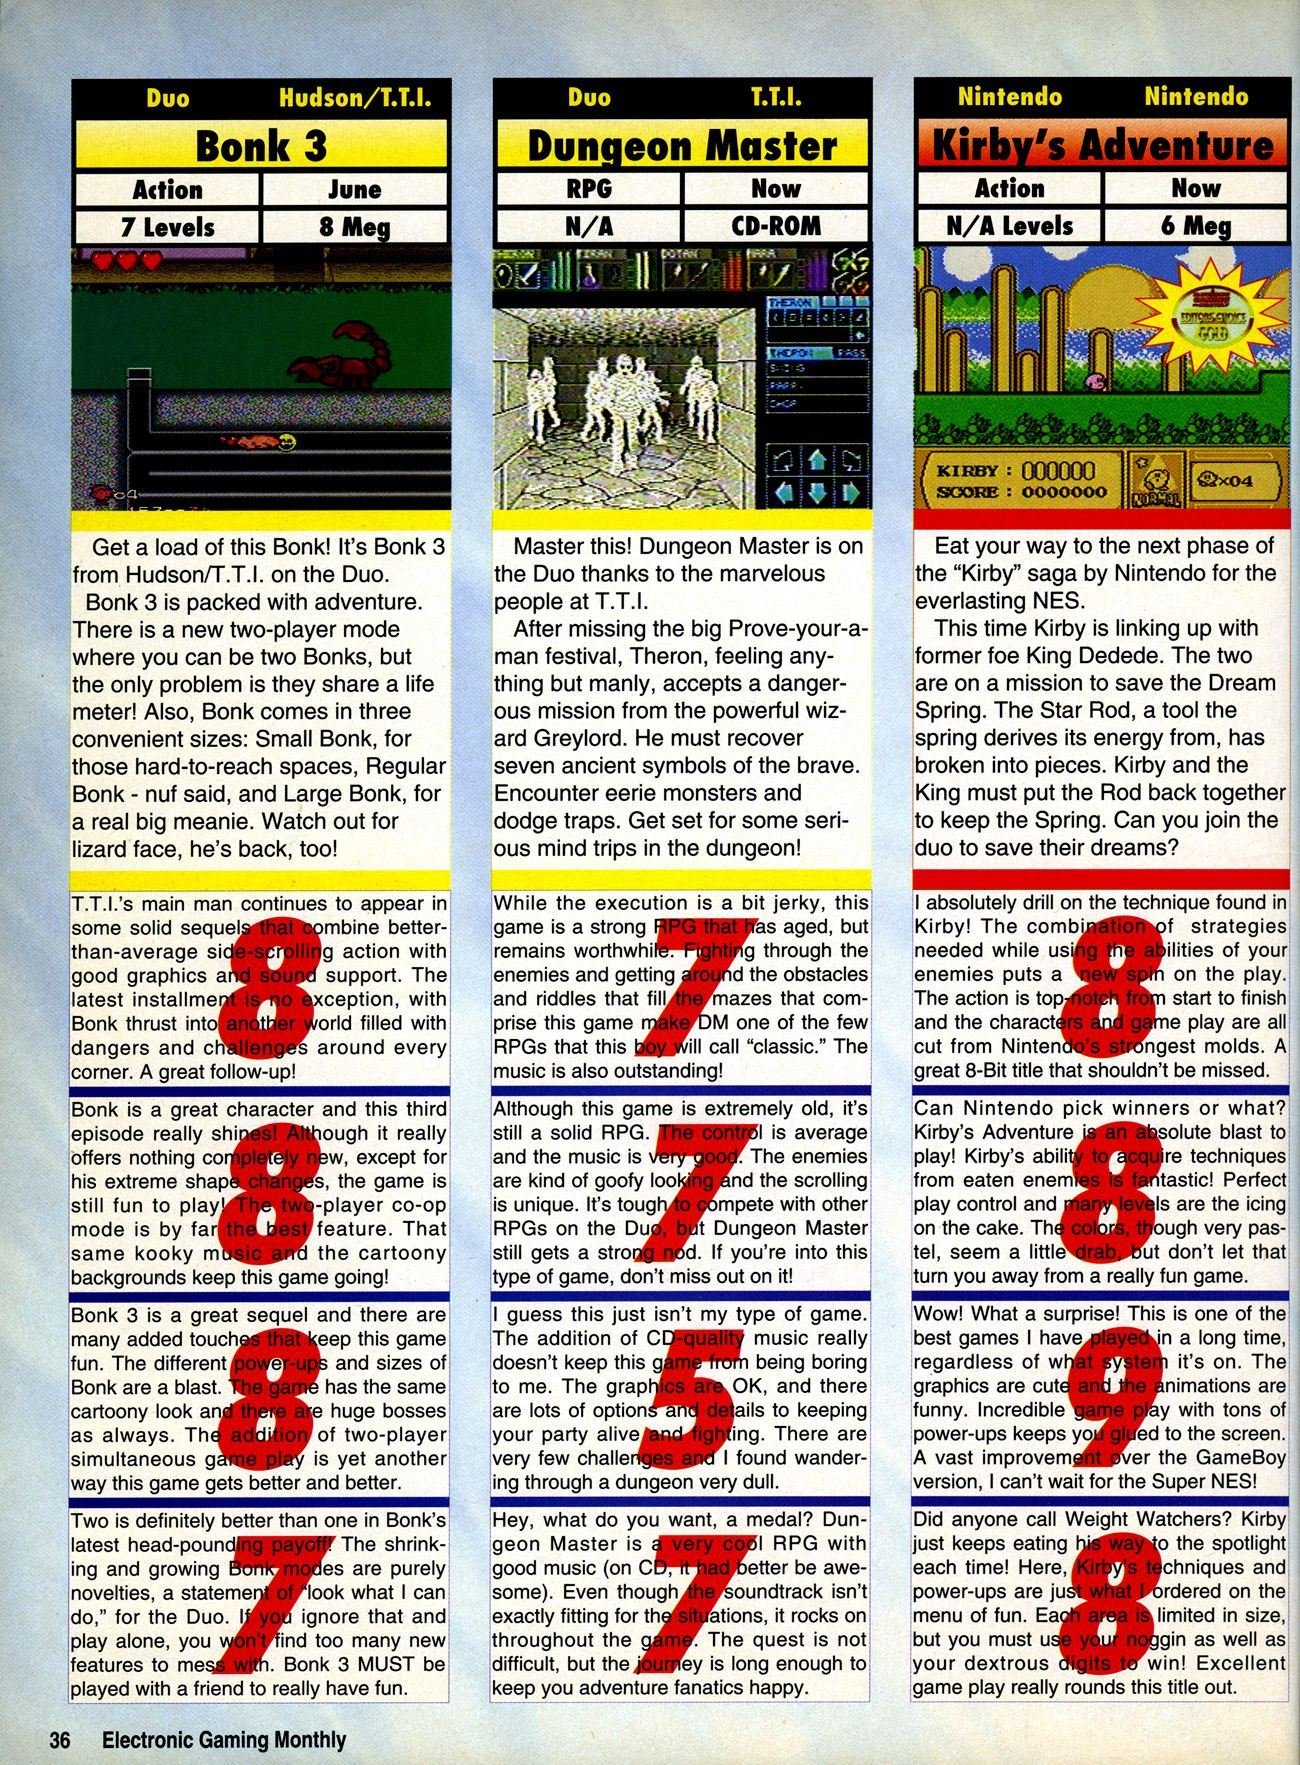 Theron's Quest Review published in American magazine 'Electronic Gaming Monthly', Issue #47 Vol 6 No 6 June 1993, Page 36